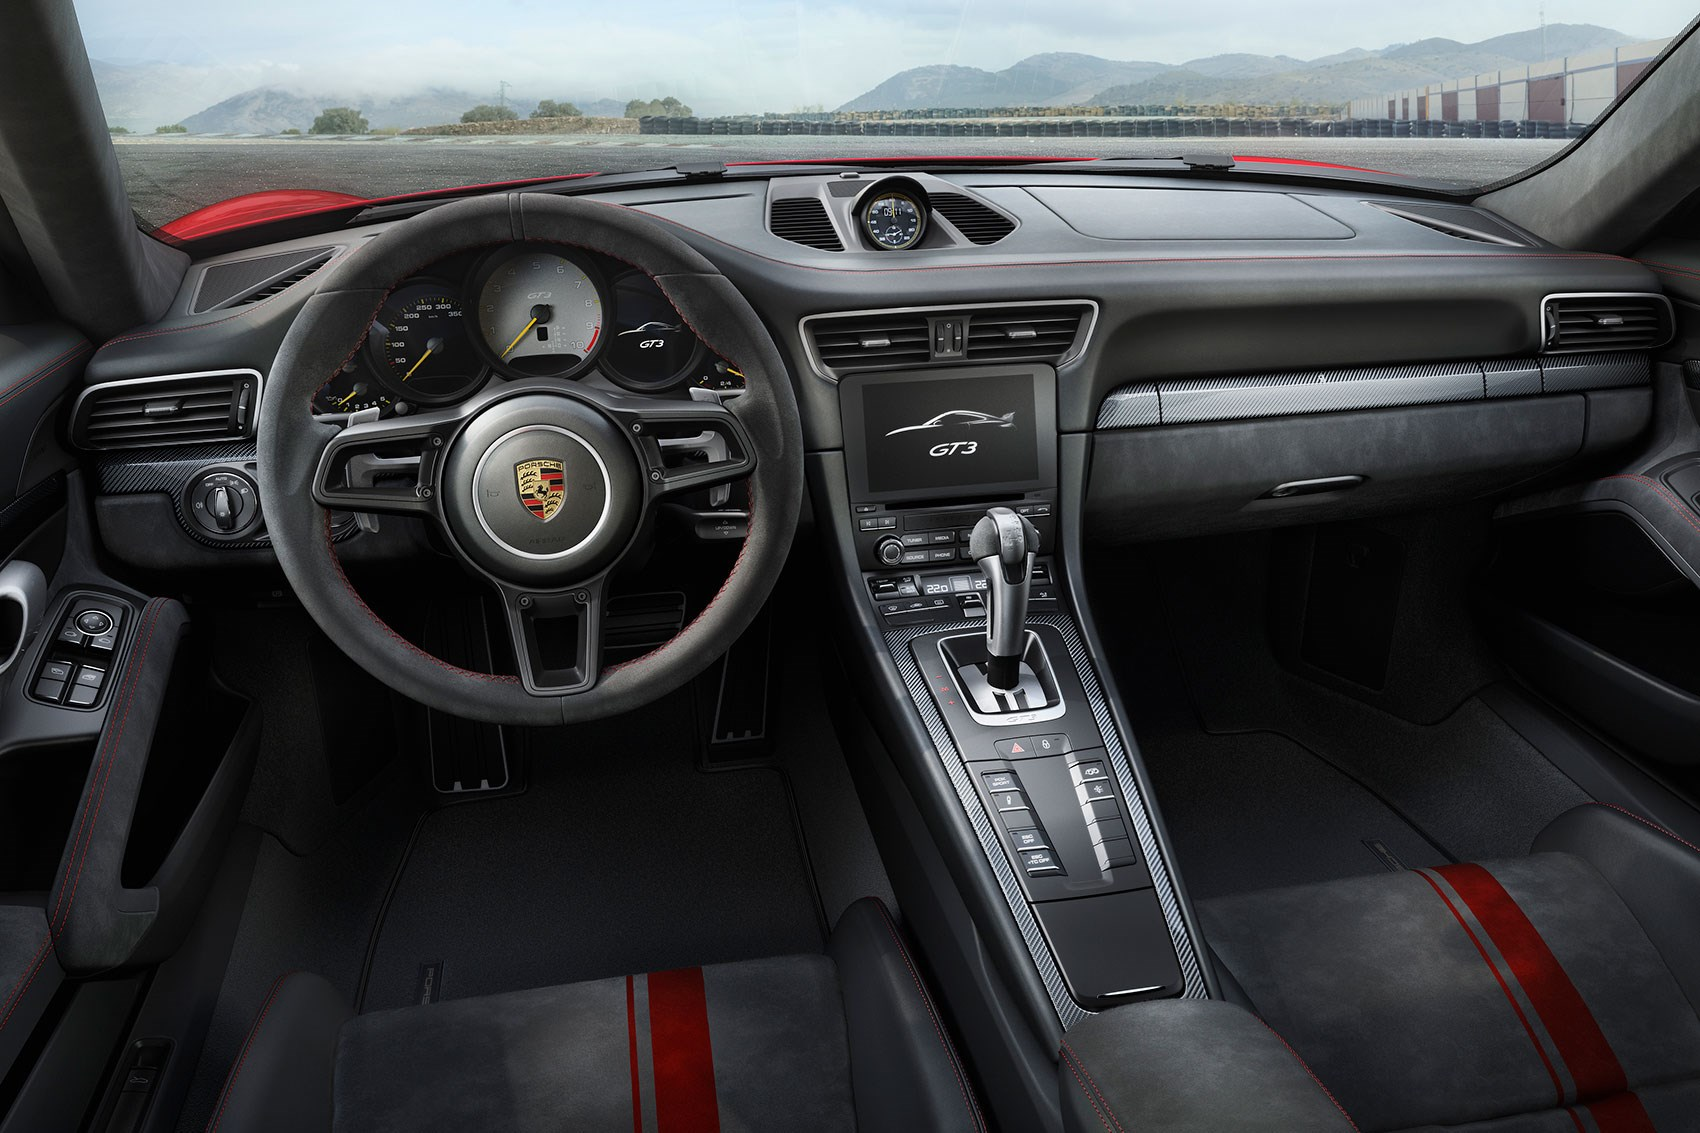 2017 Porsche 911 GT3 cabin with PDK